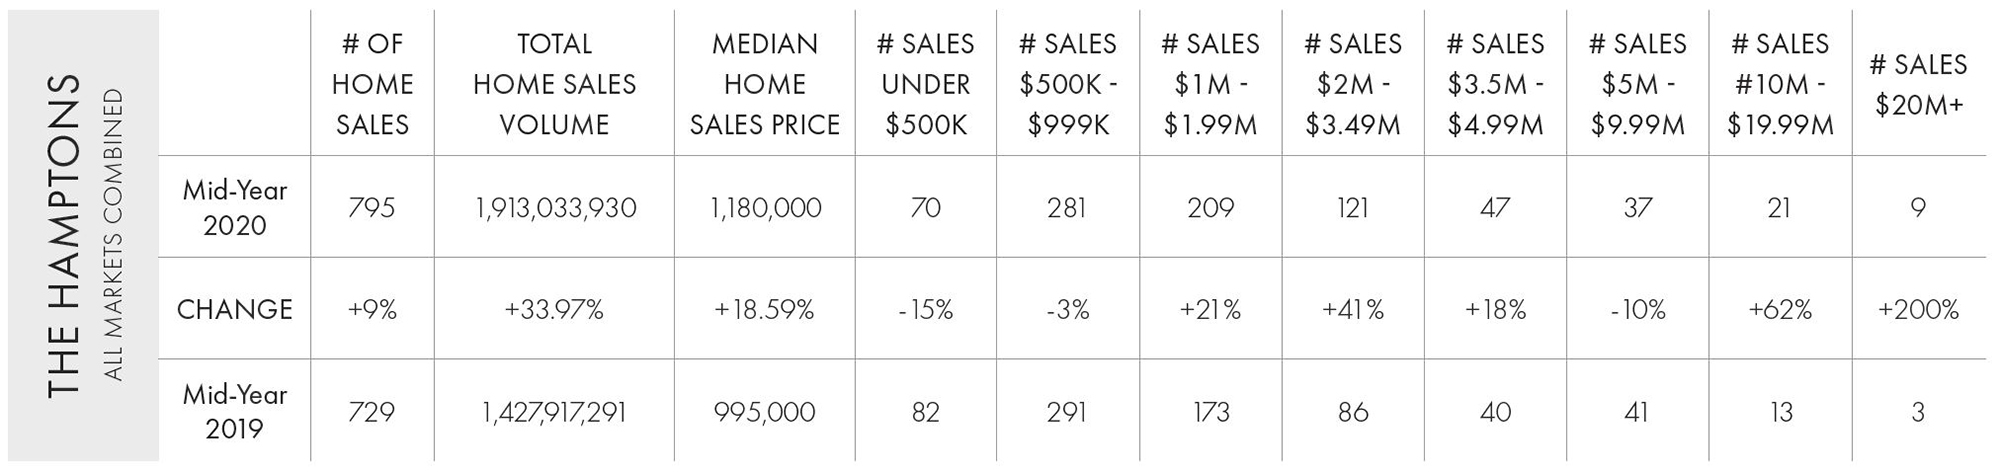 hamptons mid year 2020 market report chart